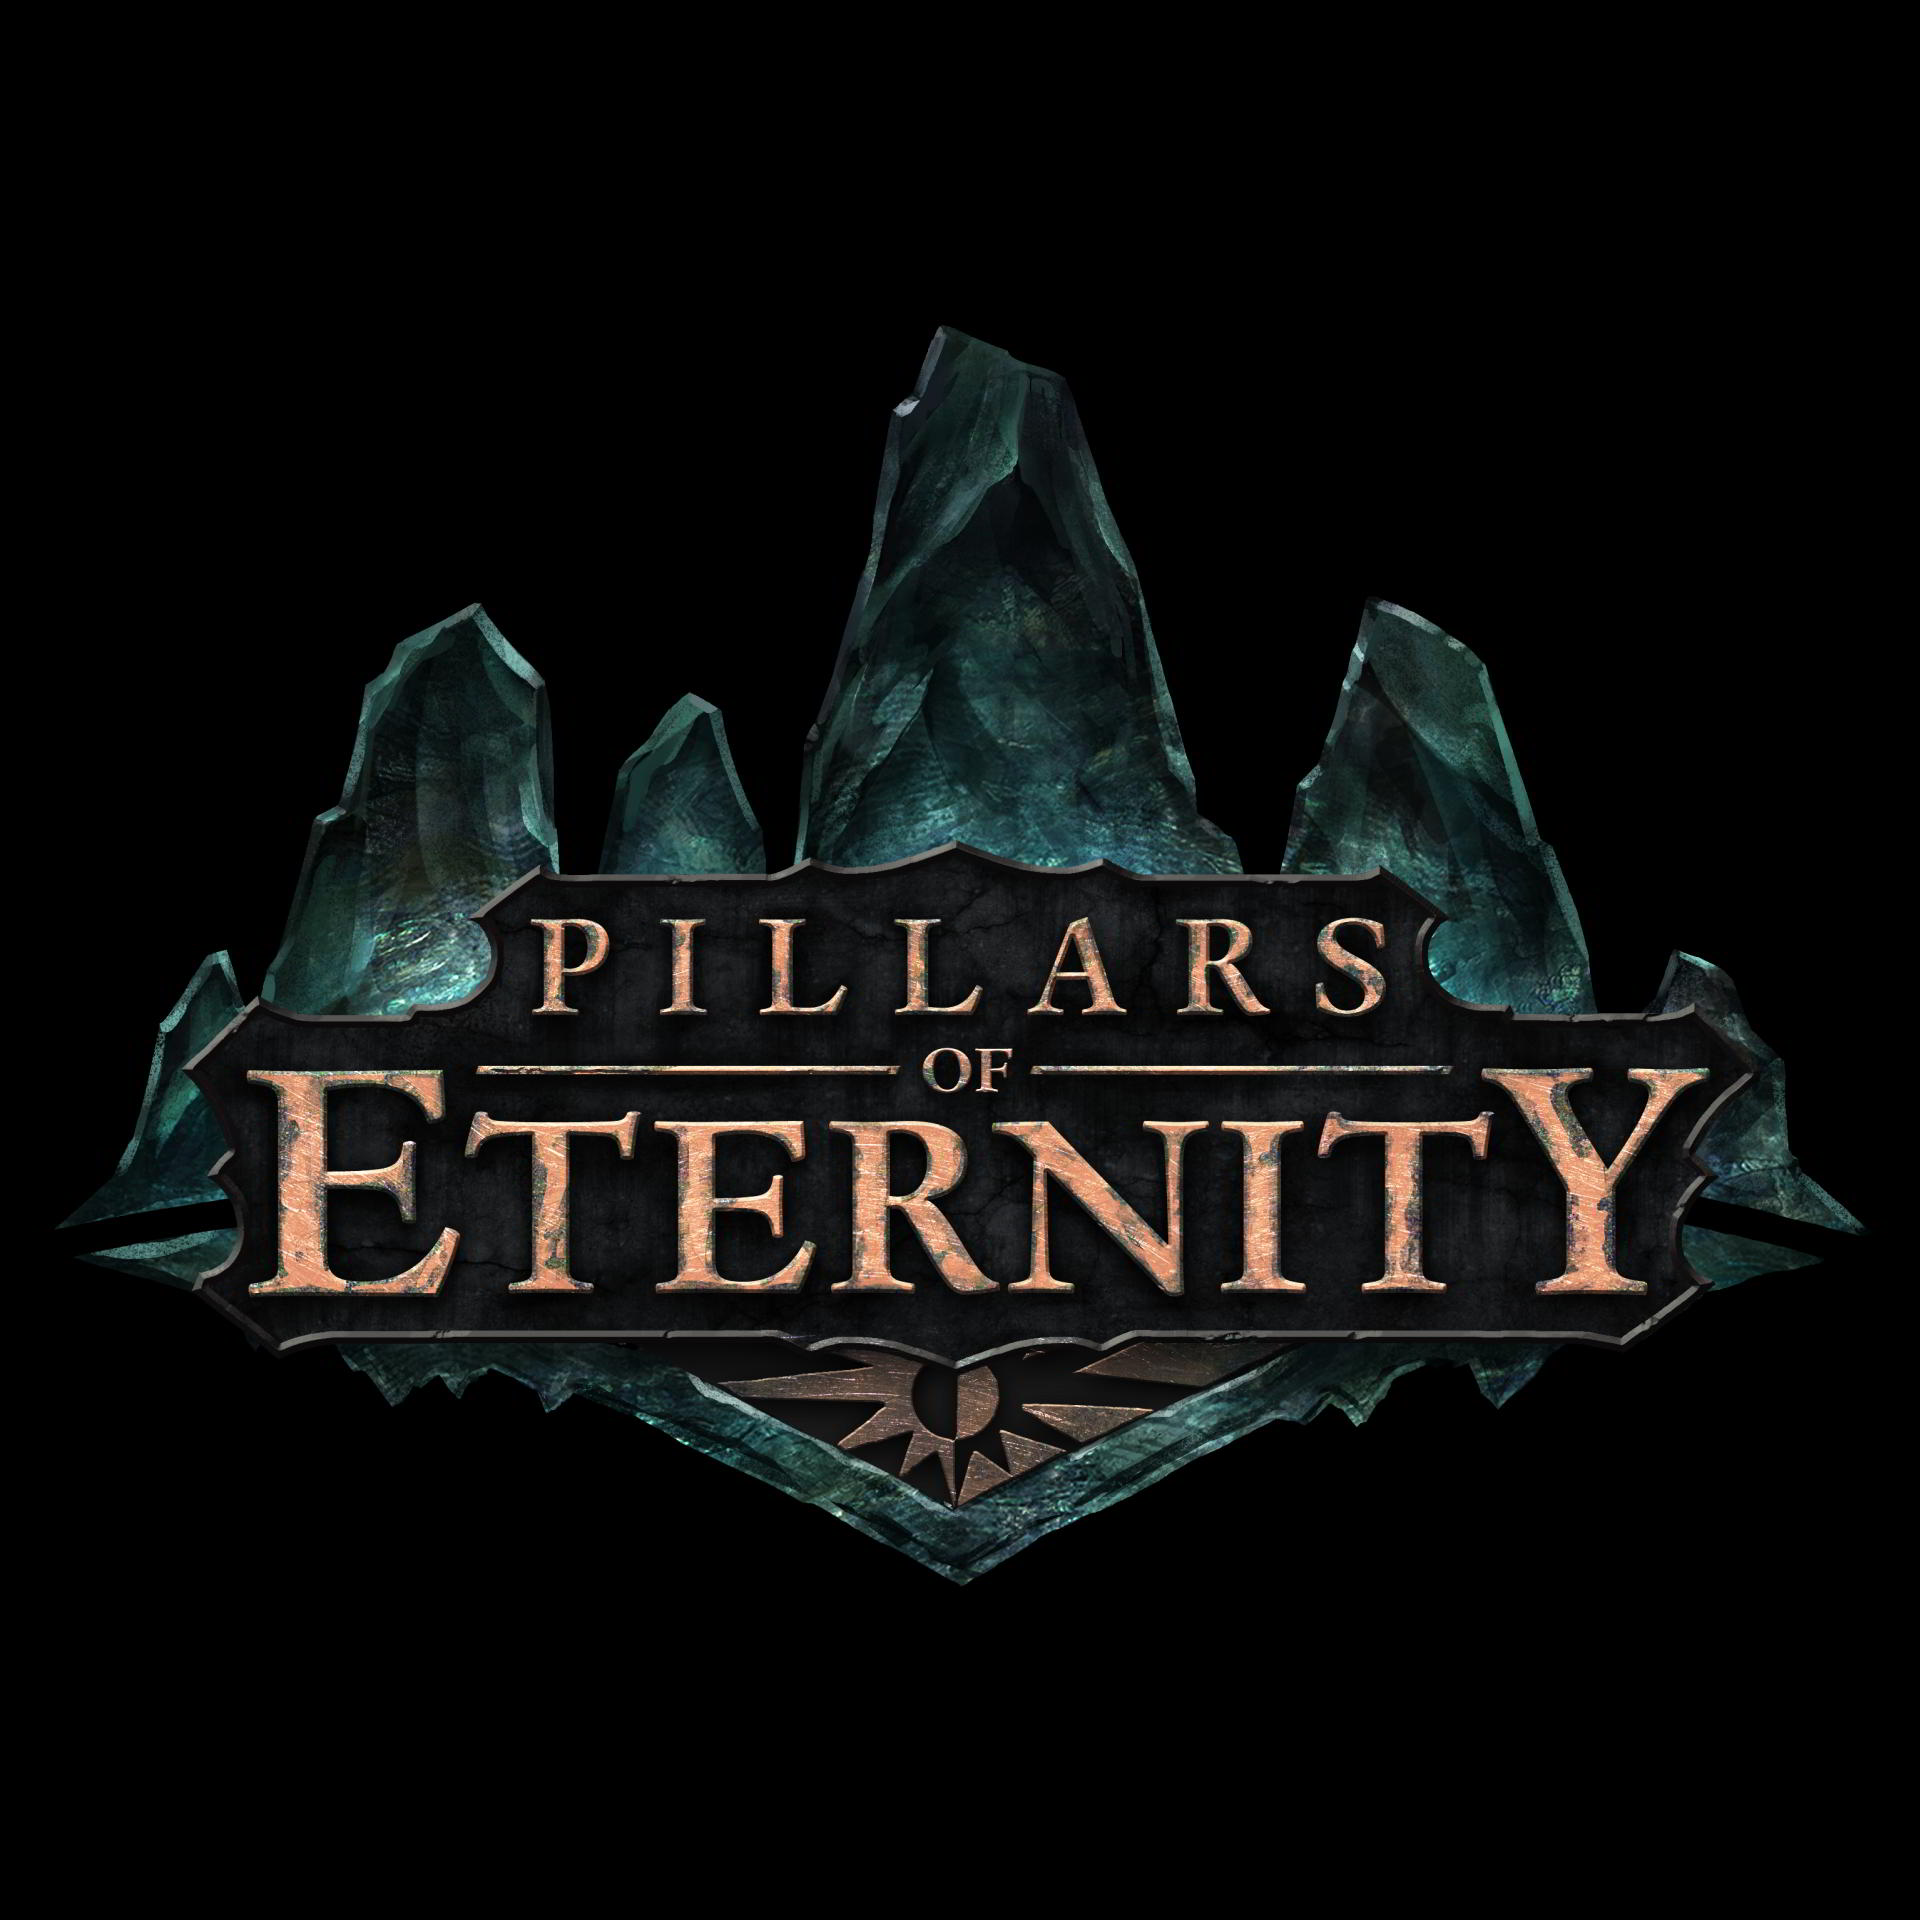 pillarsofeternity-logo